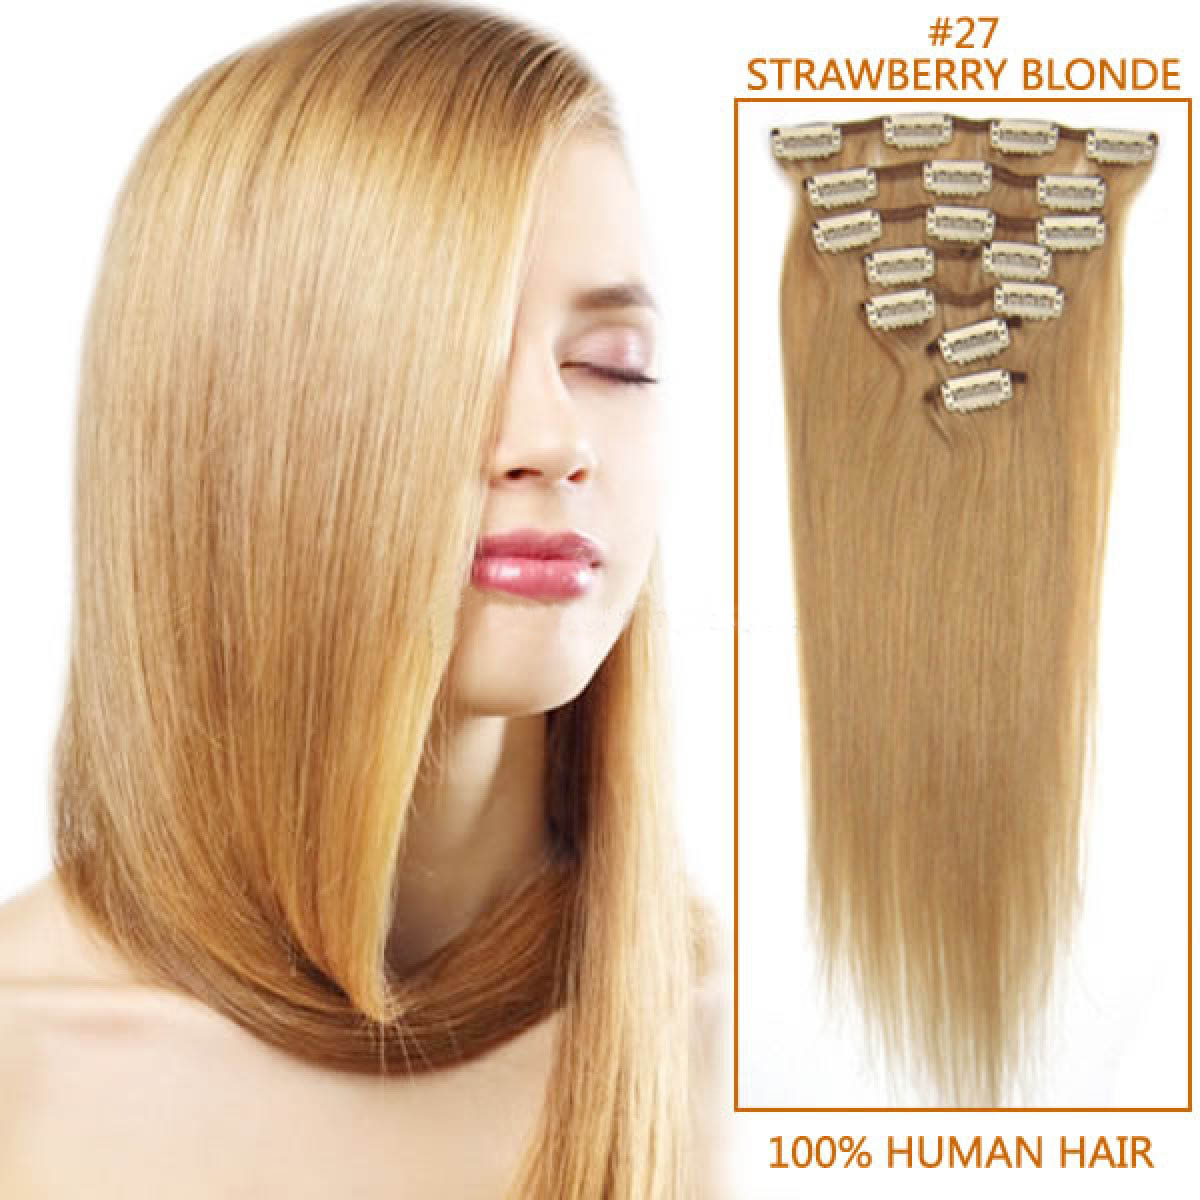 24 Inch 27 Strawberry Blonde Clip In Remy Human Hair Extensions 9pcs